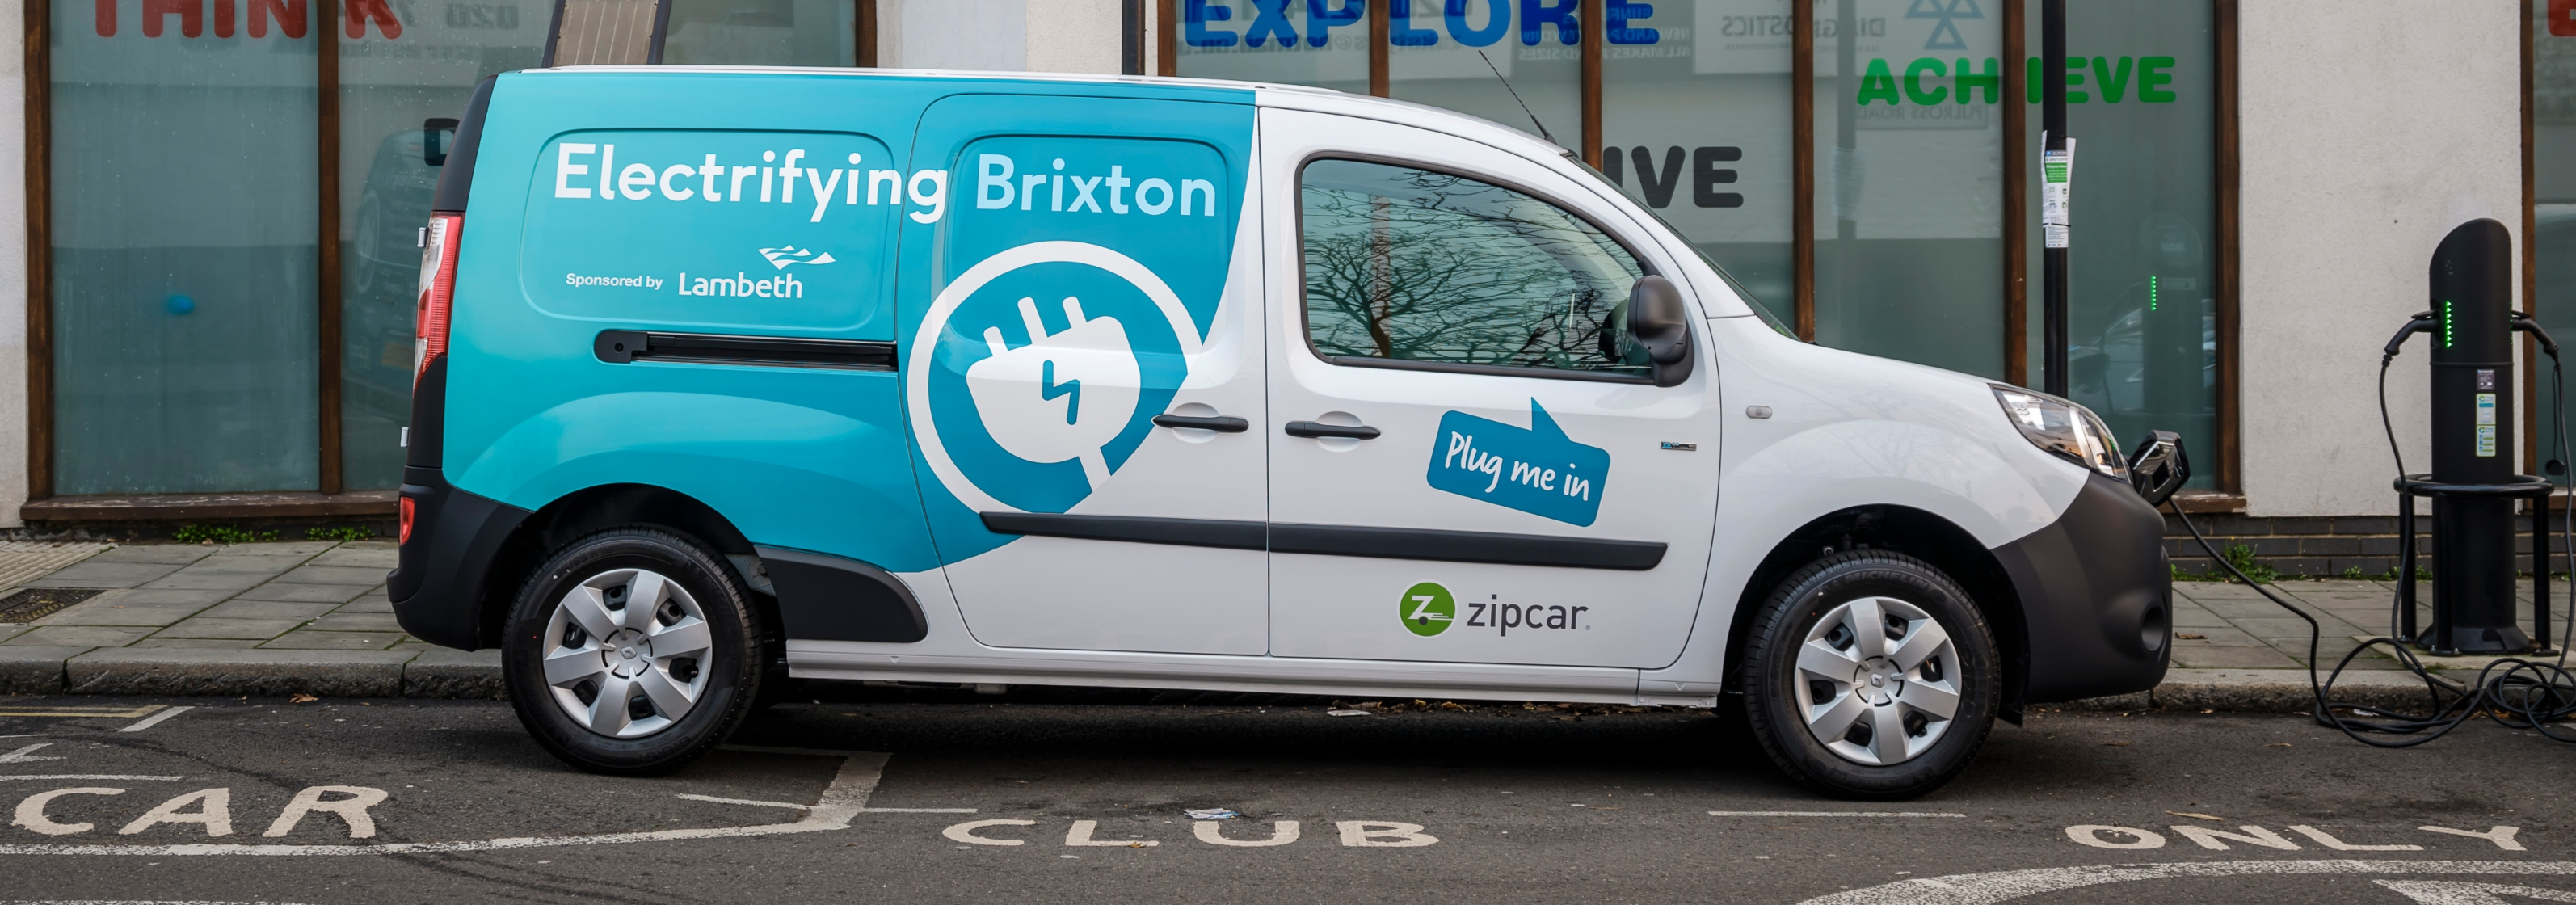 London's first shared E-Van